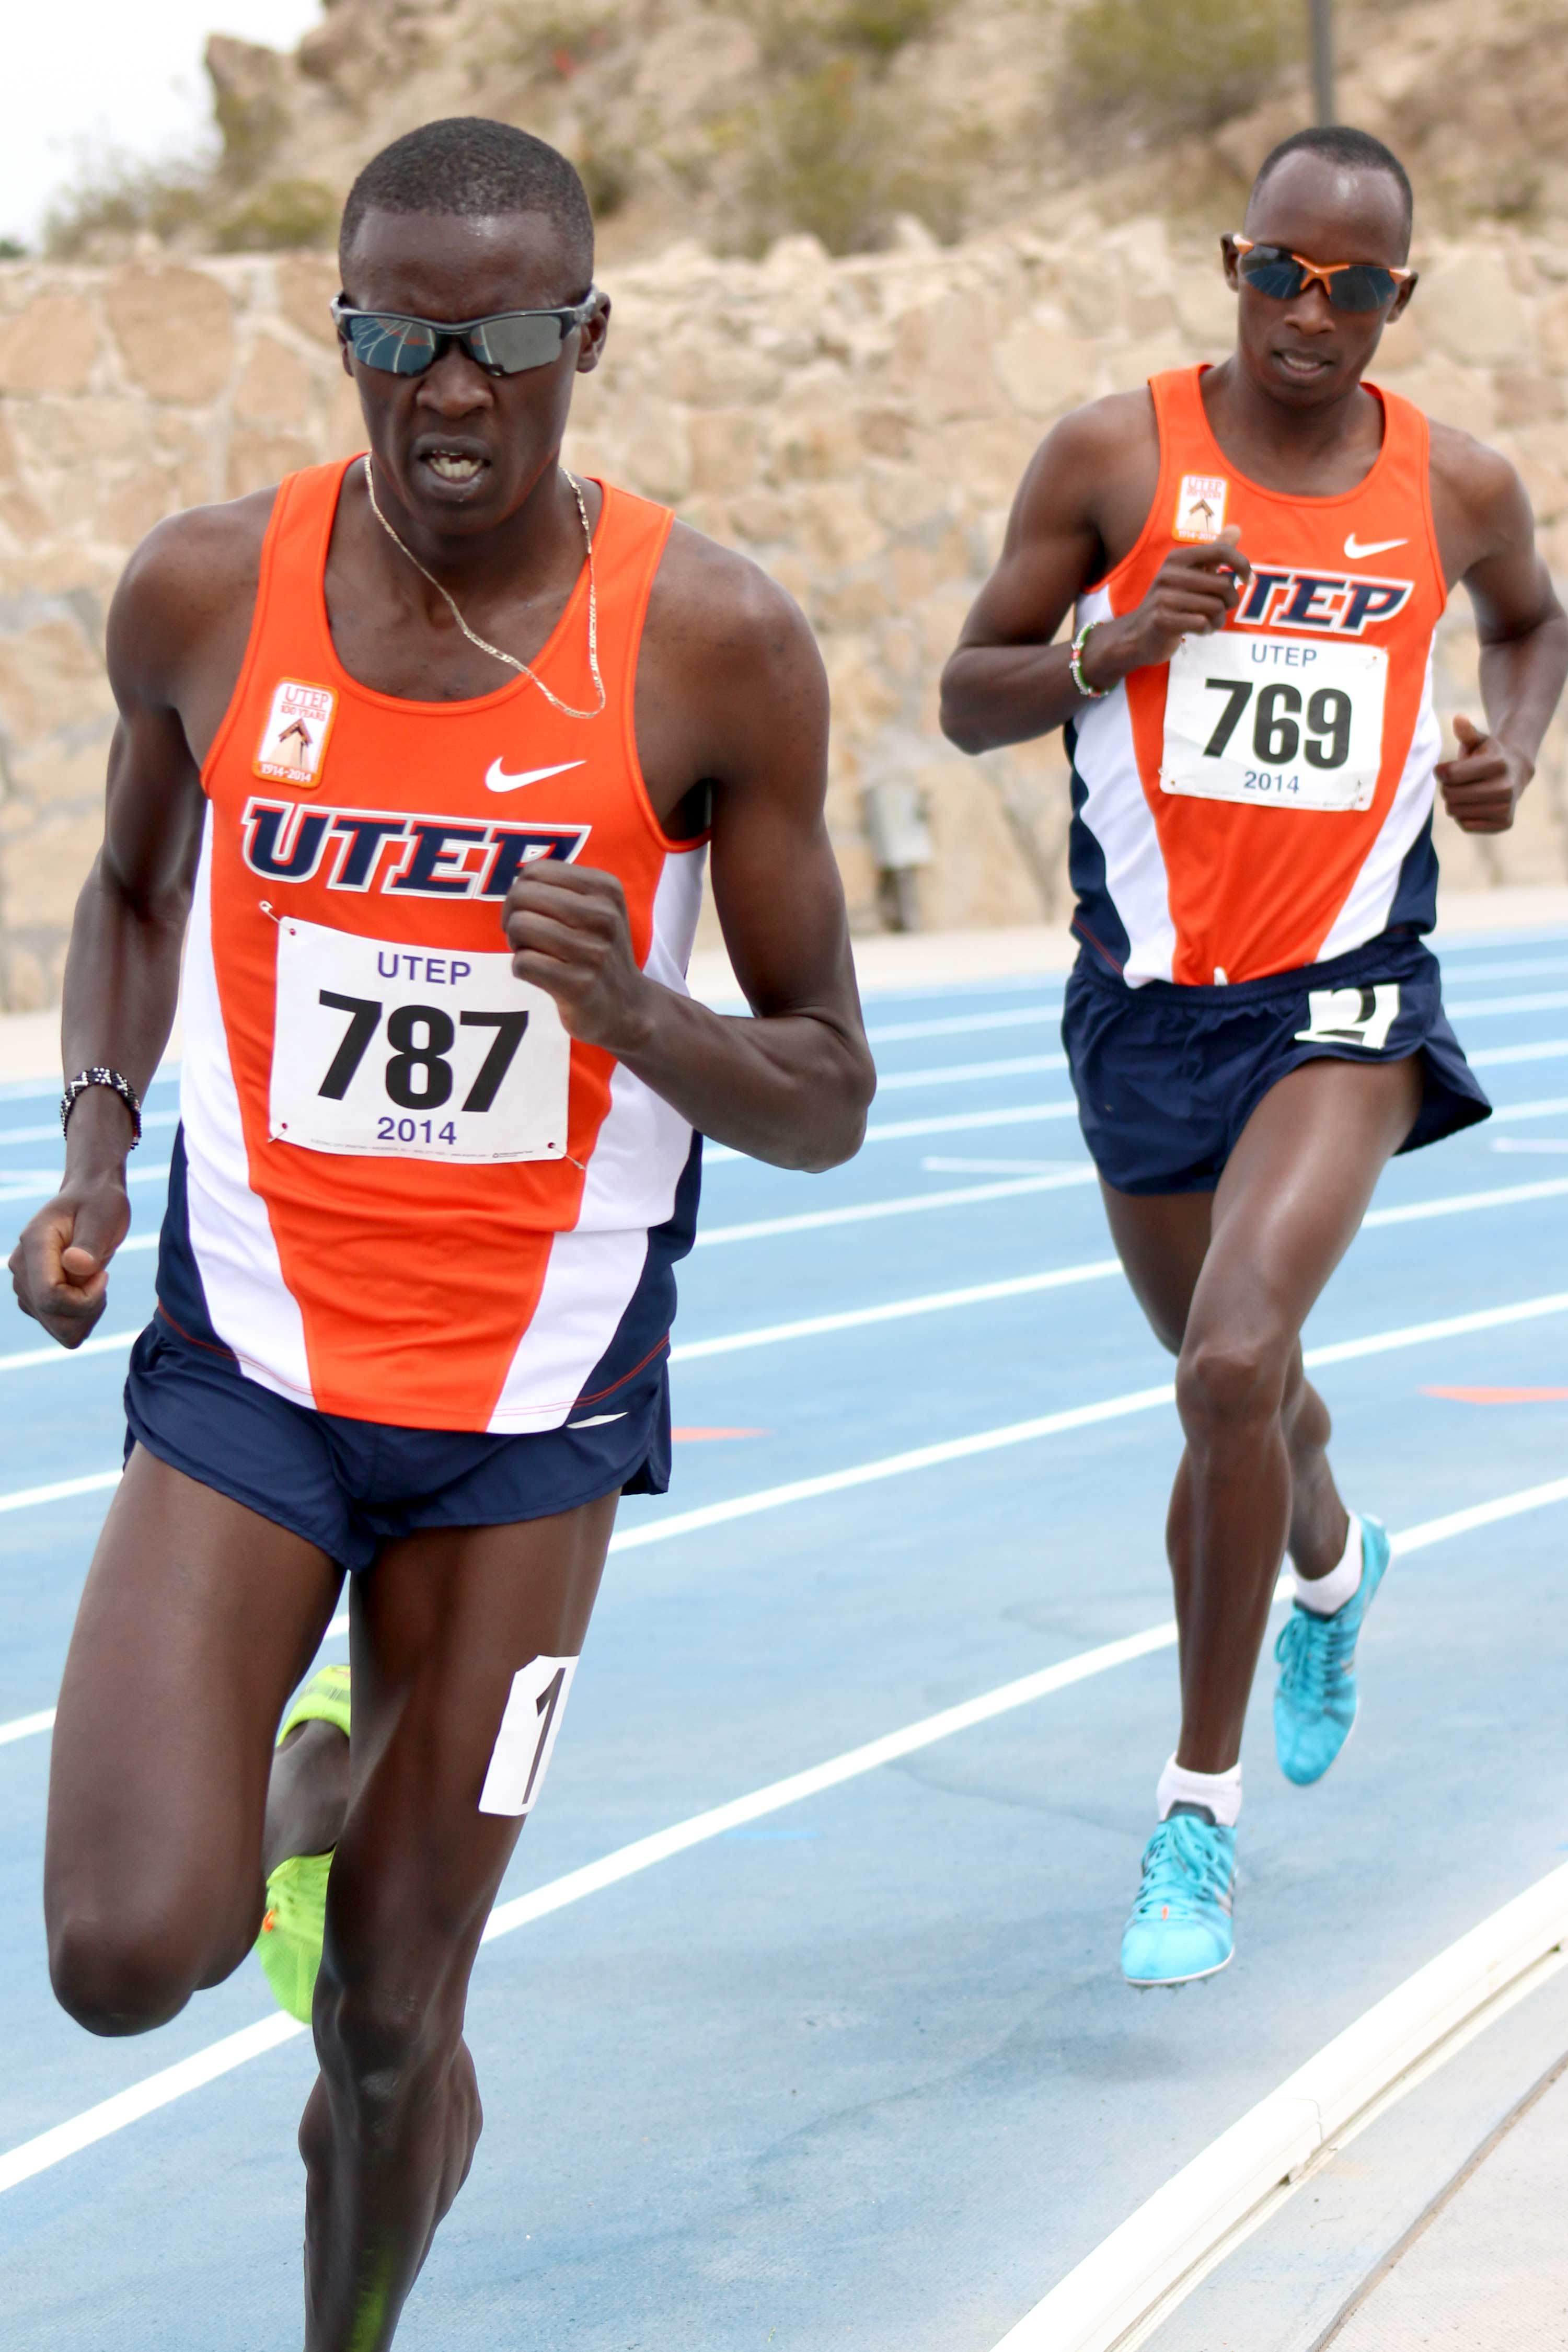 Distance runner Anthony Rotich runs in the 1500-meters, followed by teammate Cosmas Boit. Rotich and Boit placed first and second, respectively, at the April 12 meet.